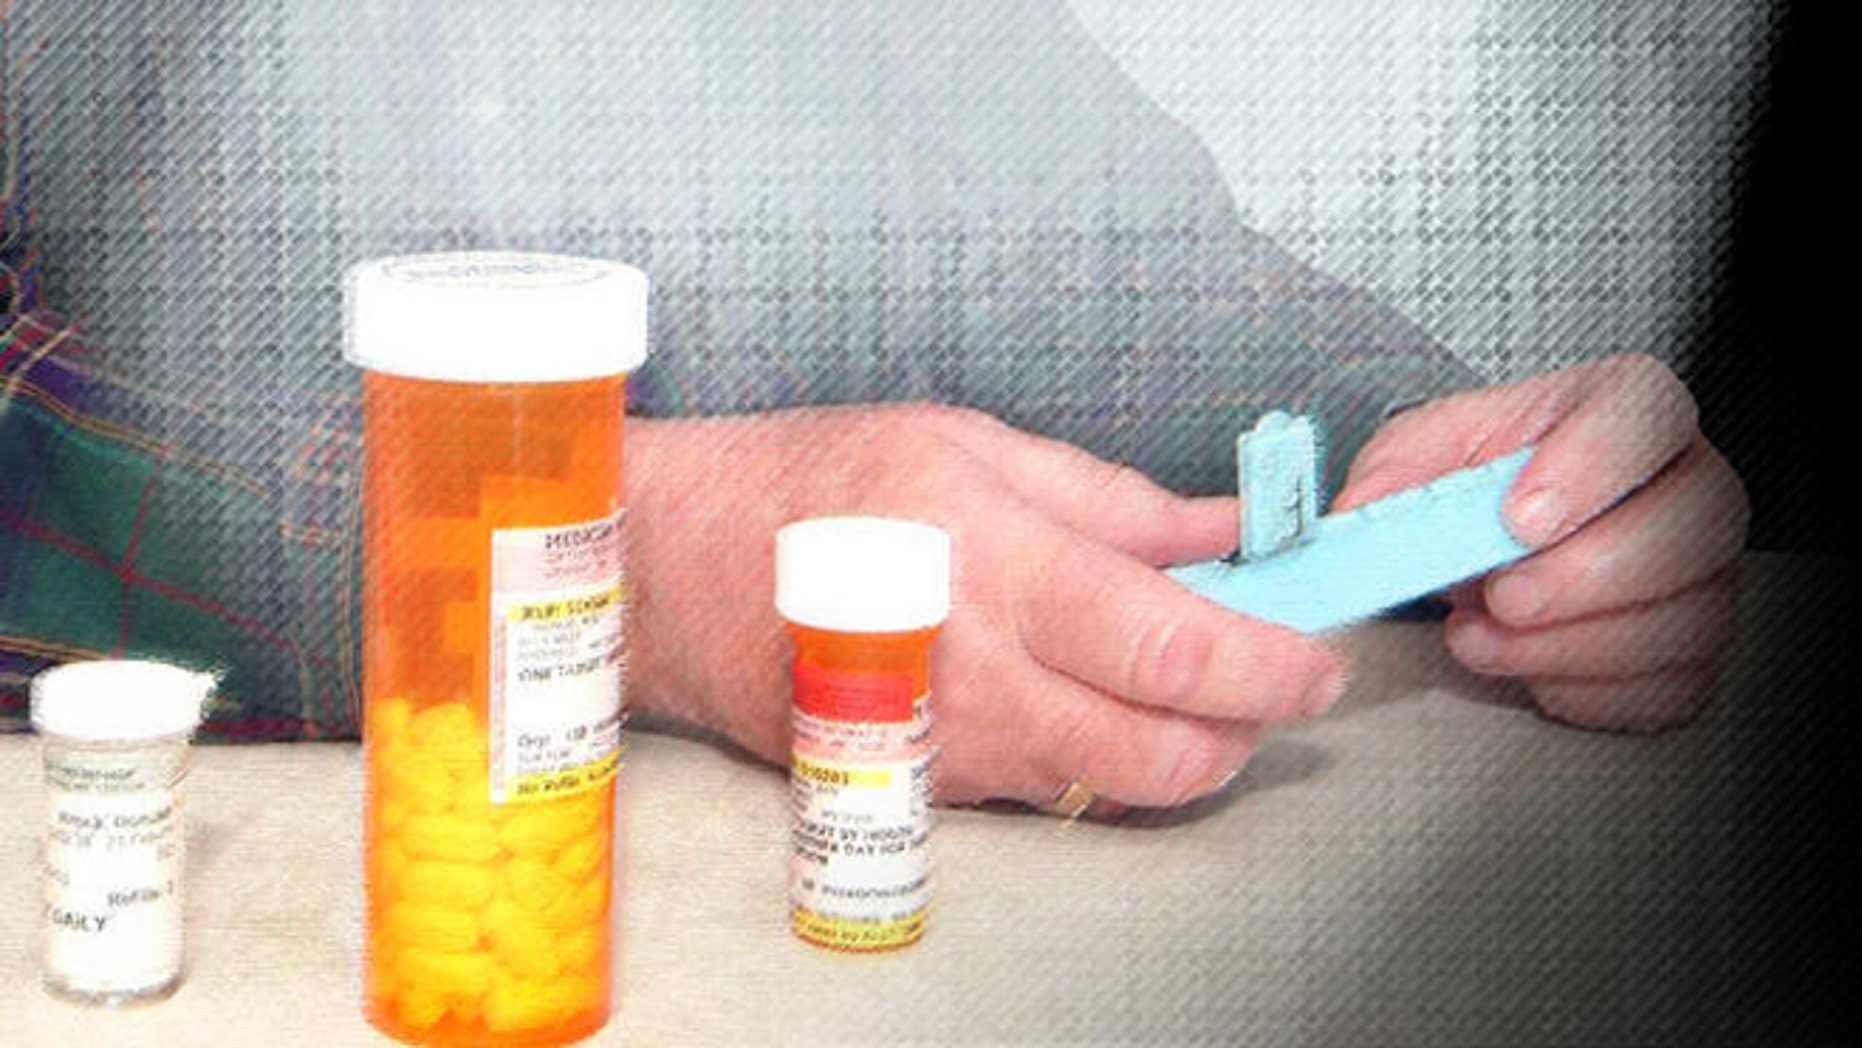 Don Brock of Litchfield, Minn., looks at some of his prescription drugs at his home in Litchfield, Minn. Friday, Feb. 10, 2006. Brock quit buying prescription drugs from Canada this year, now that he's signed up for the new federal Medicare drug benefit. (AP Photo/Bill Zimmer)